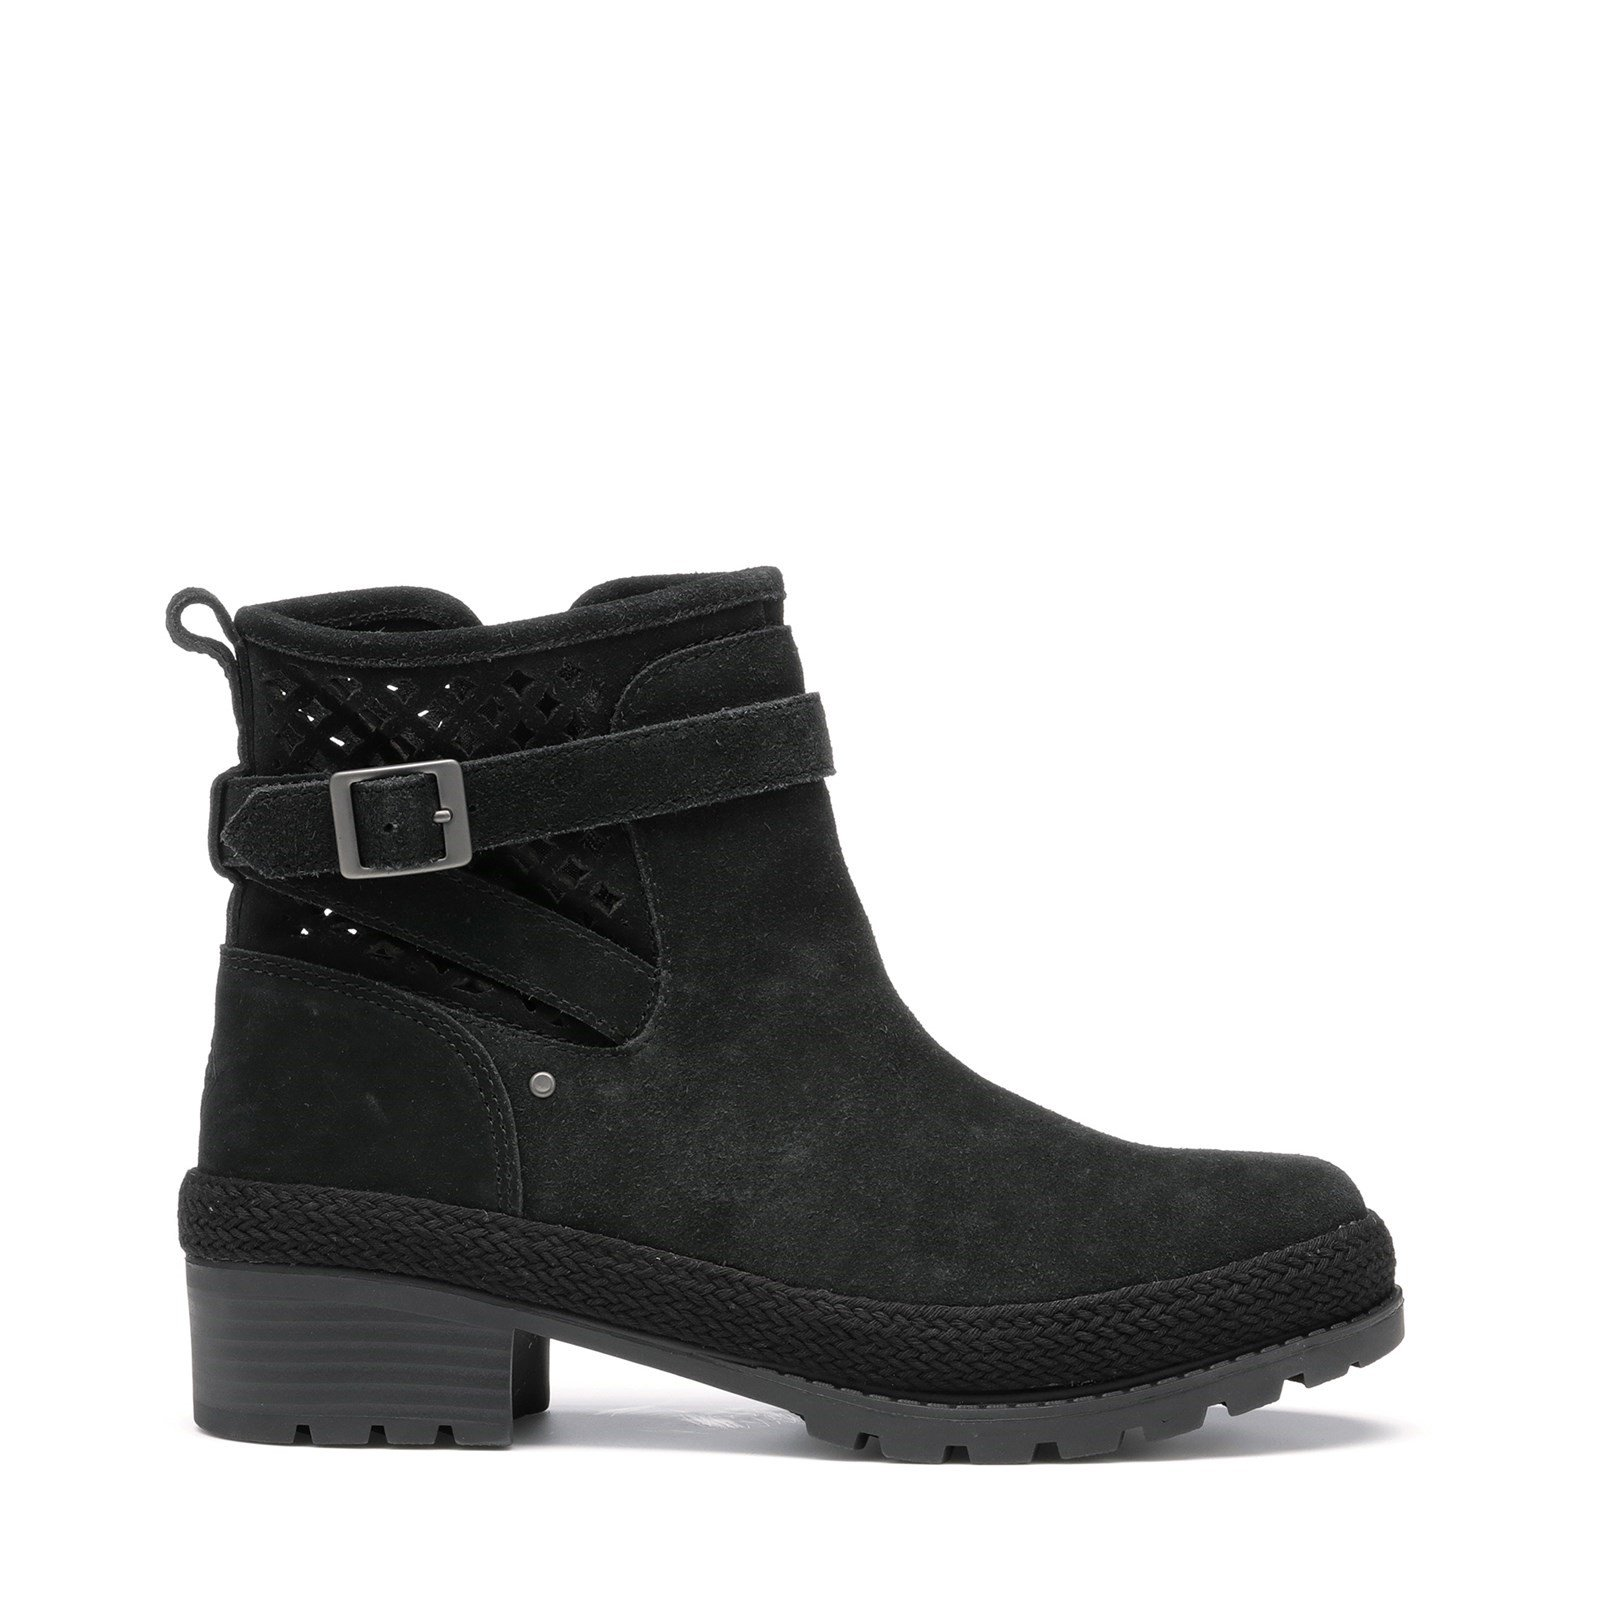 Muck Boots Women's Liberty Perforated Leather Boots Various Colours 31814 - Black 5.5